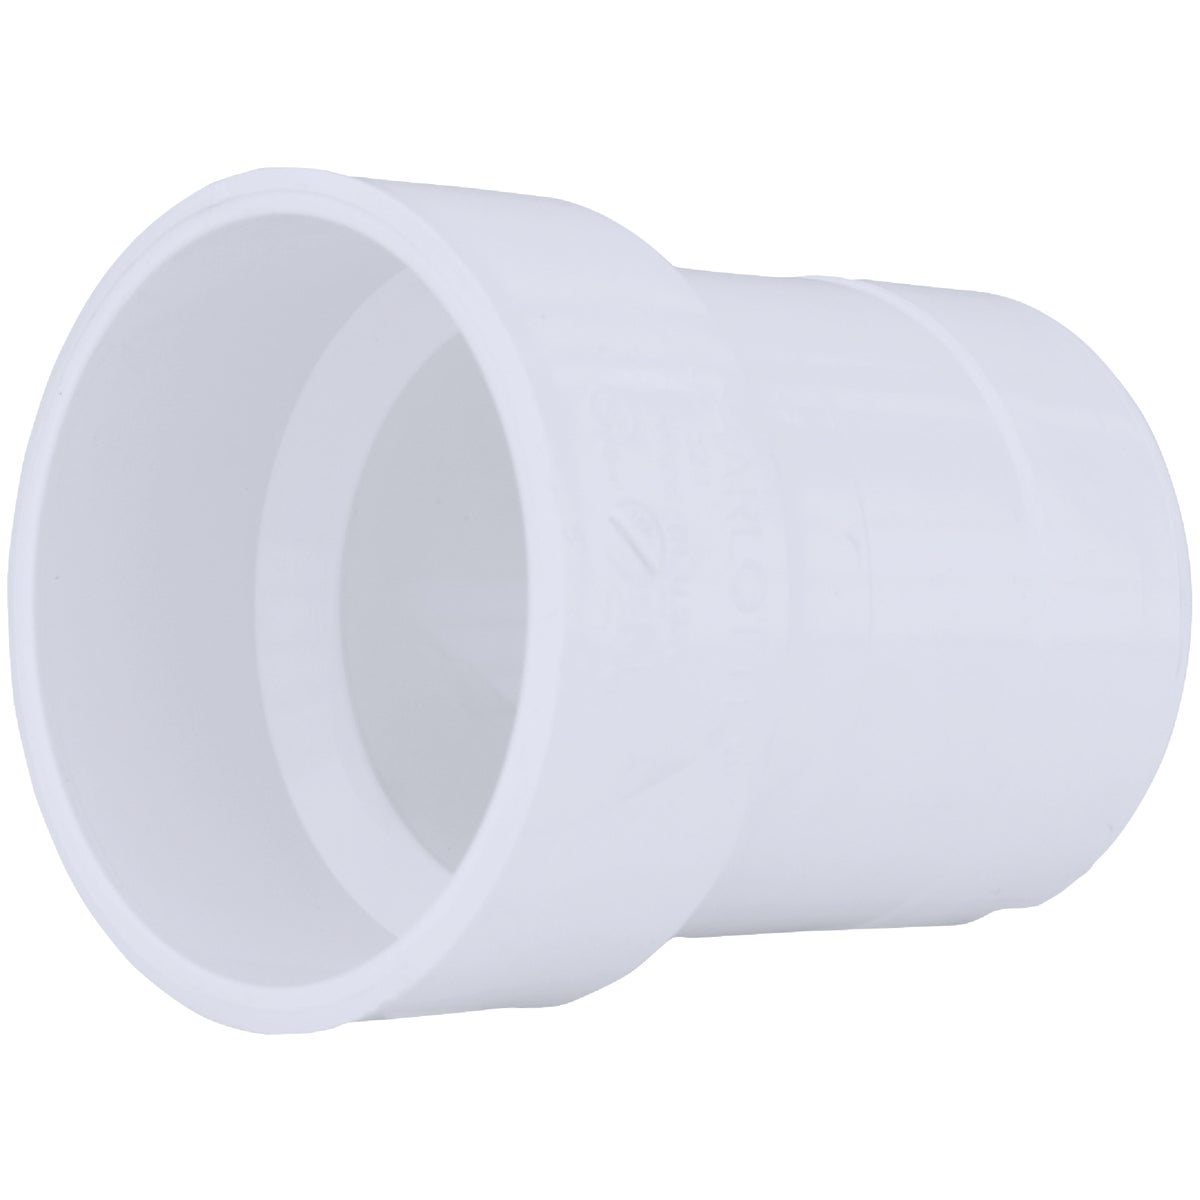 "4"" PVC-DWV HUB ADAPTER - 70540 by Genova Inc  Pvc Dwv"